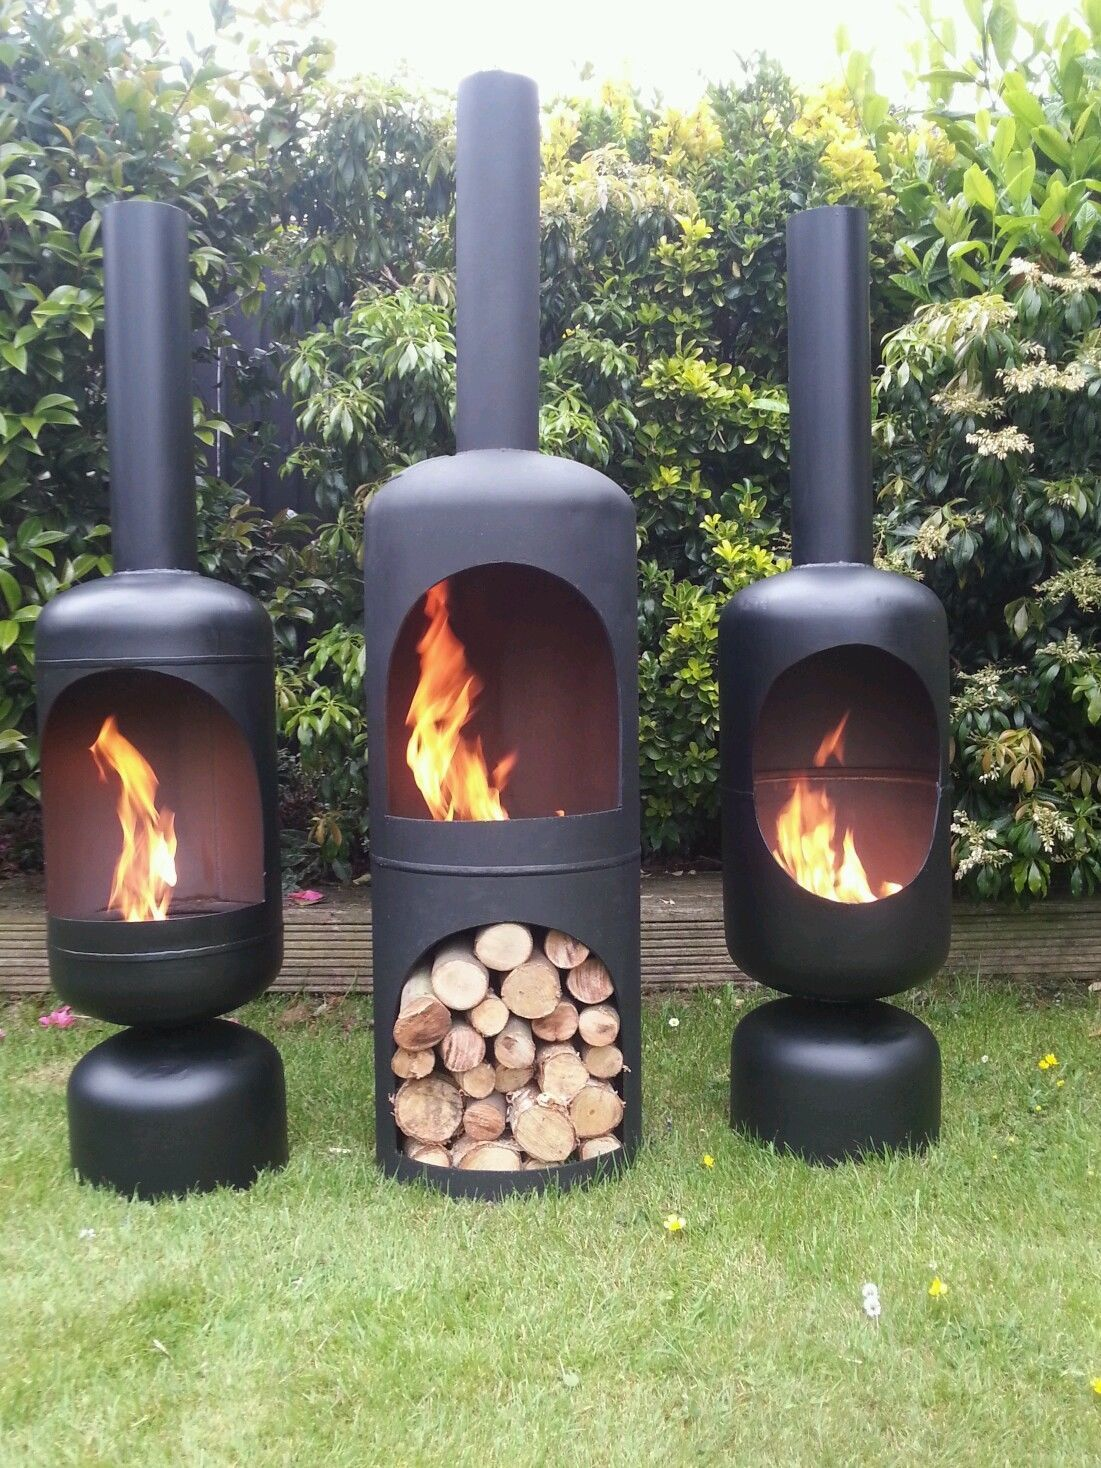 Diy Fire Pit Ideas Can Transform A Basic Backyard There Are Also Amazing Options If You Don T Have The Time And E Gas Bottle Wood Burner Fire Pit Patio Heater